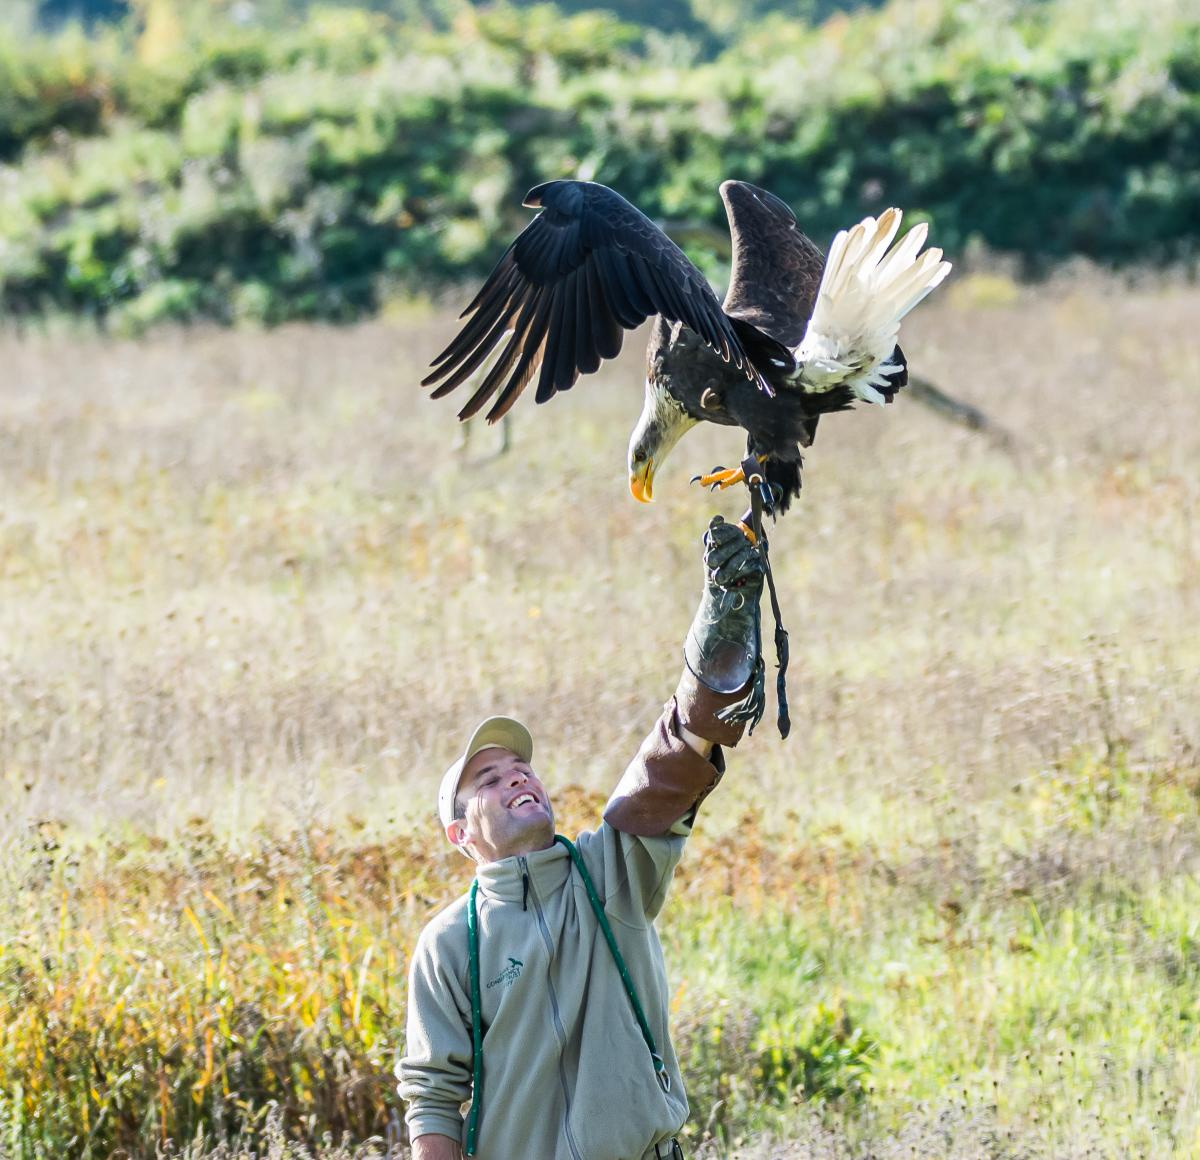 Cedric and Bald Eagle, Ian Holt